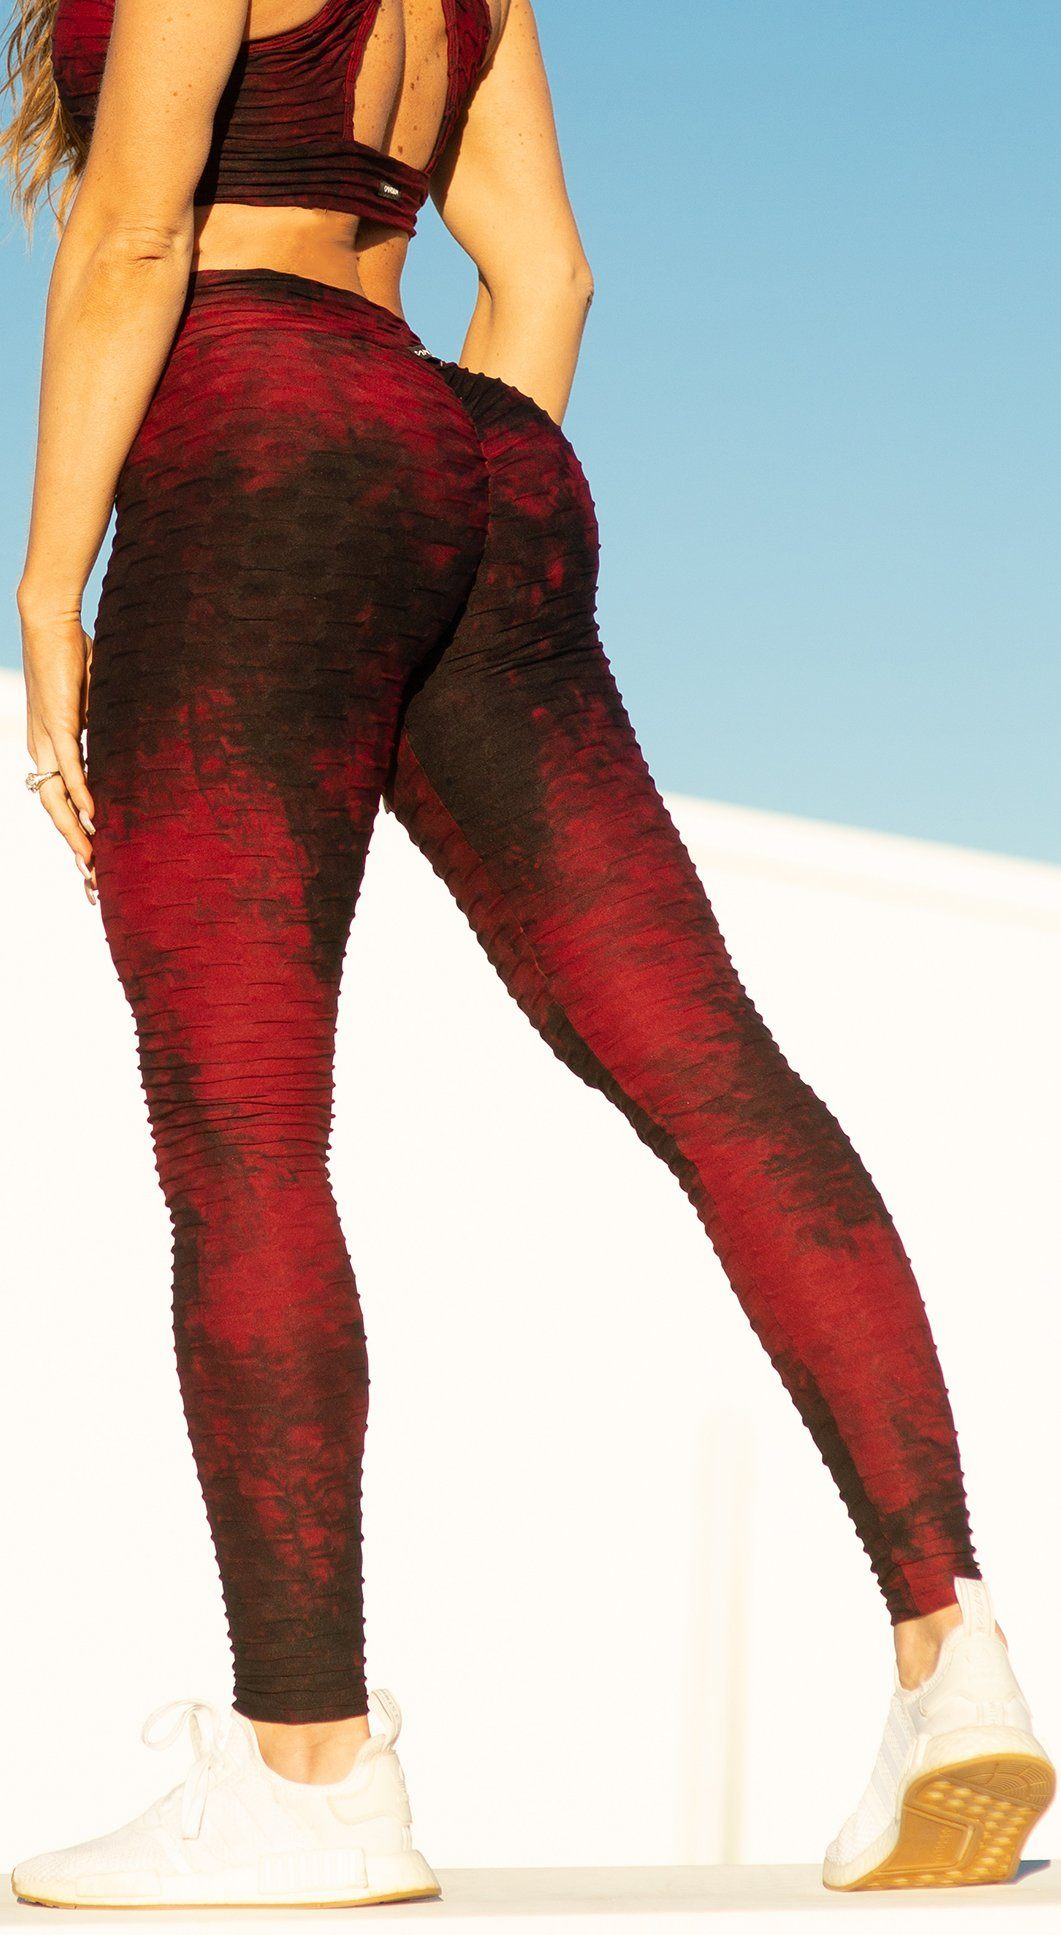 Brazilian Legging - High Waist Anti Cellulite Textured Scrunch Booty Tie Dye Bordo & Black